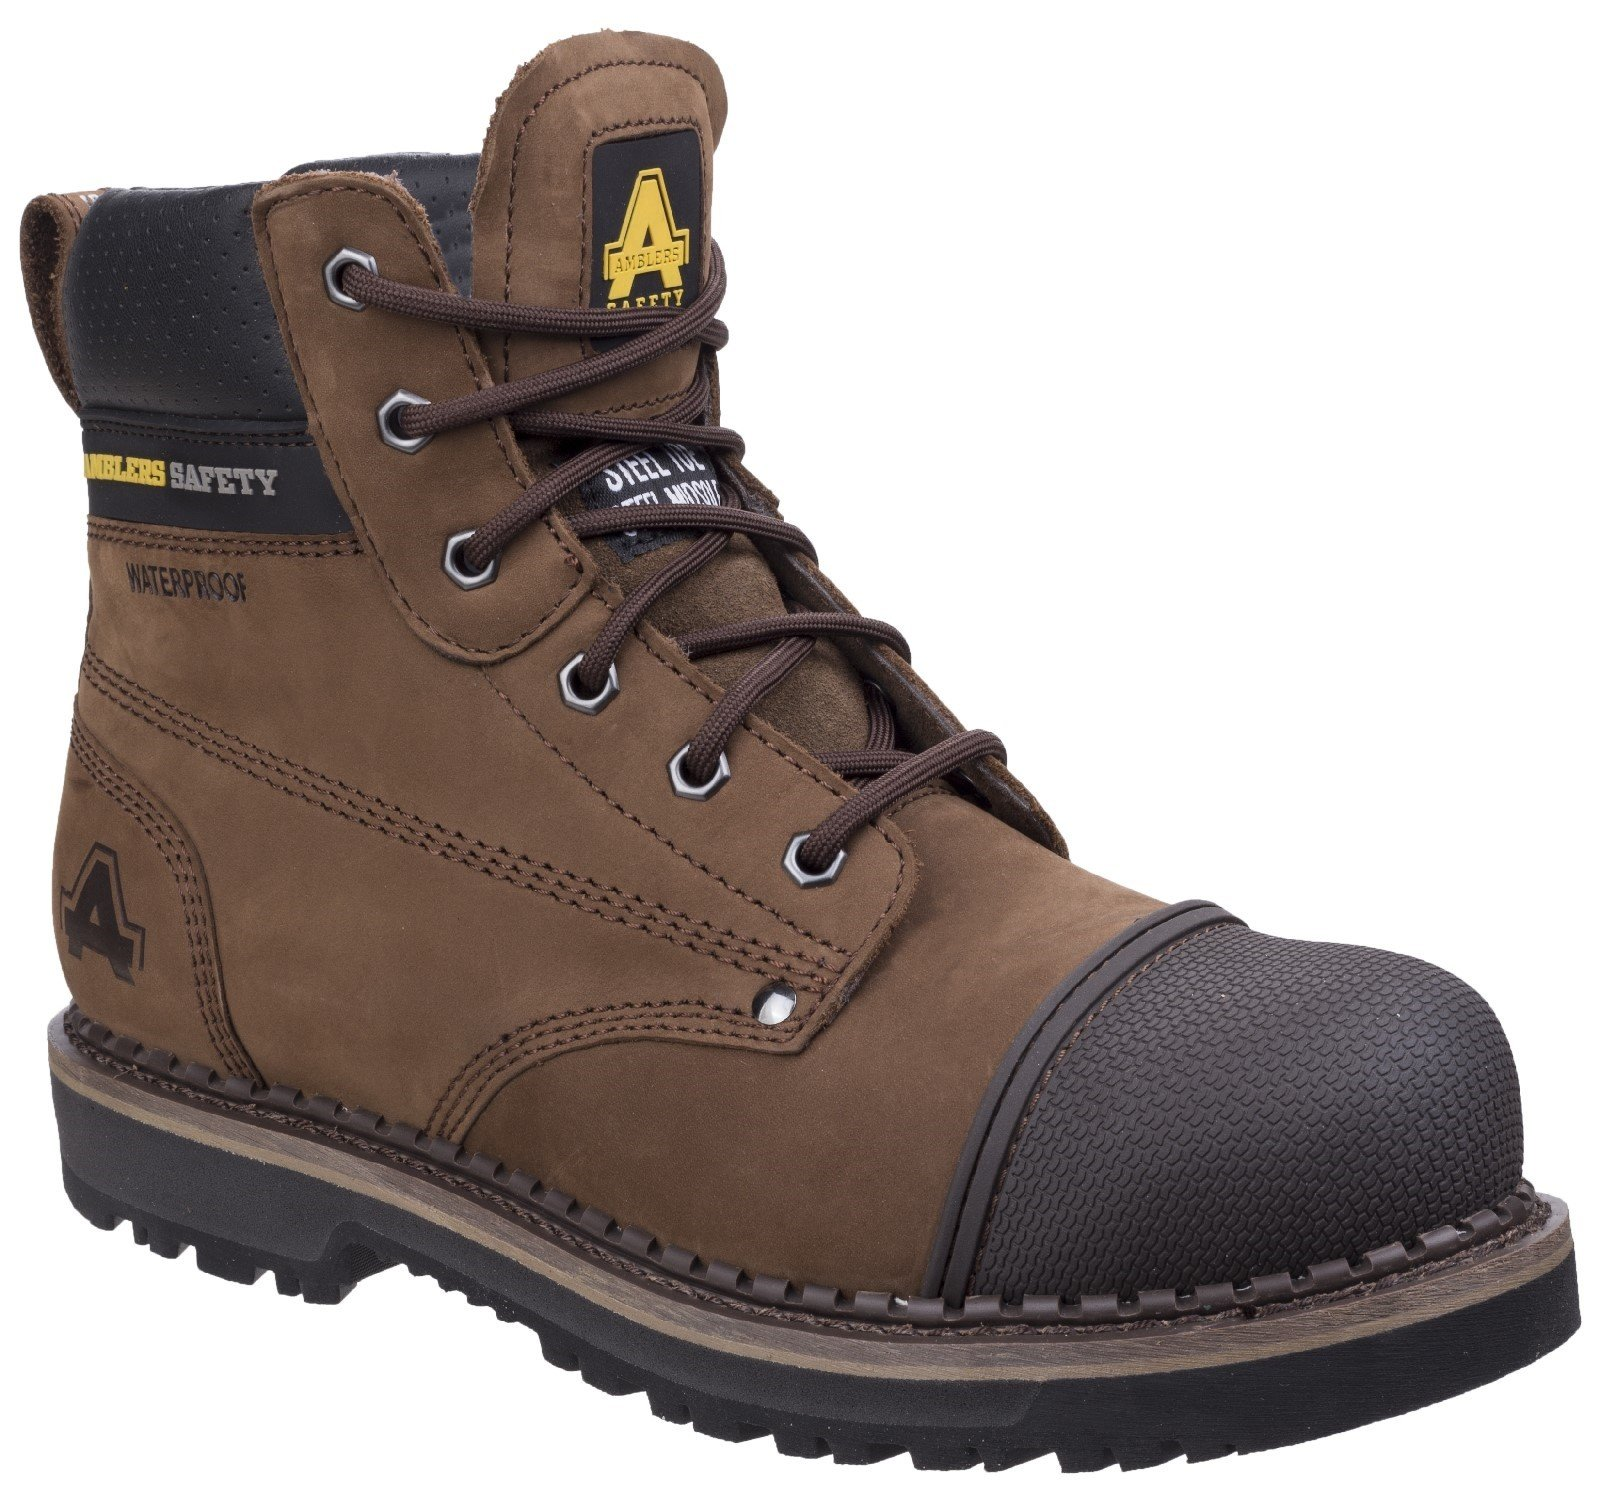 Amblers Unisex Safety Scuff Boot Brown 27096 - Brown 6